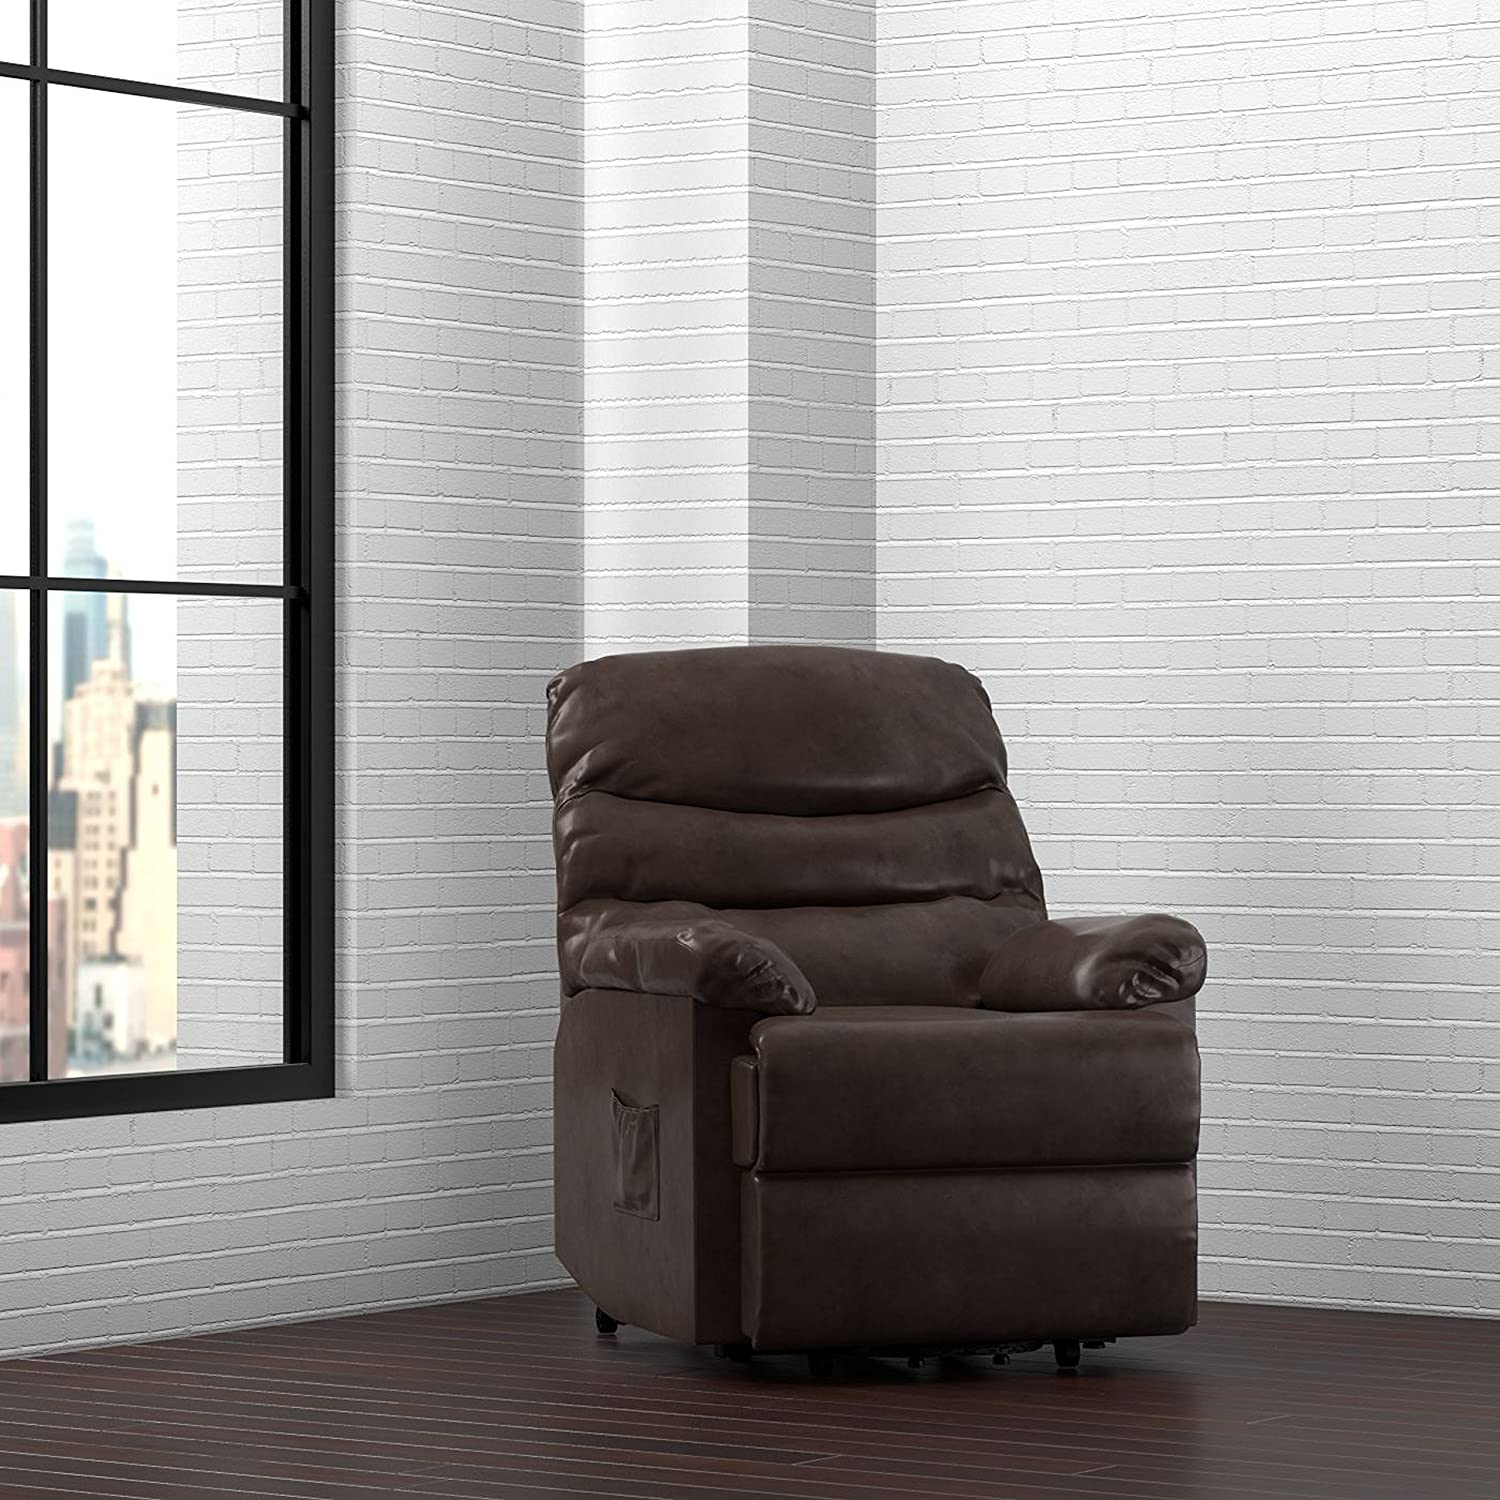 costco lift about home chair under remodel rocker big power modern design interior ideas recliner lots lounge lane oversized recliners upholstered massage cheap comfy chairs leather ottoman target walmart